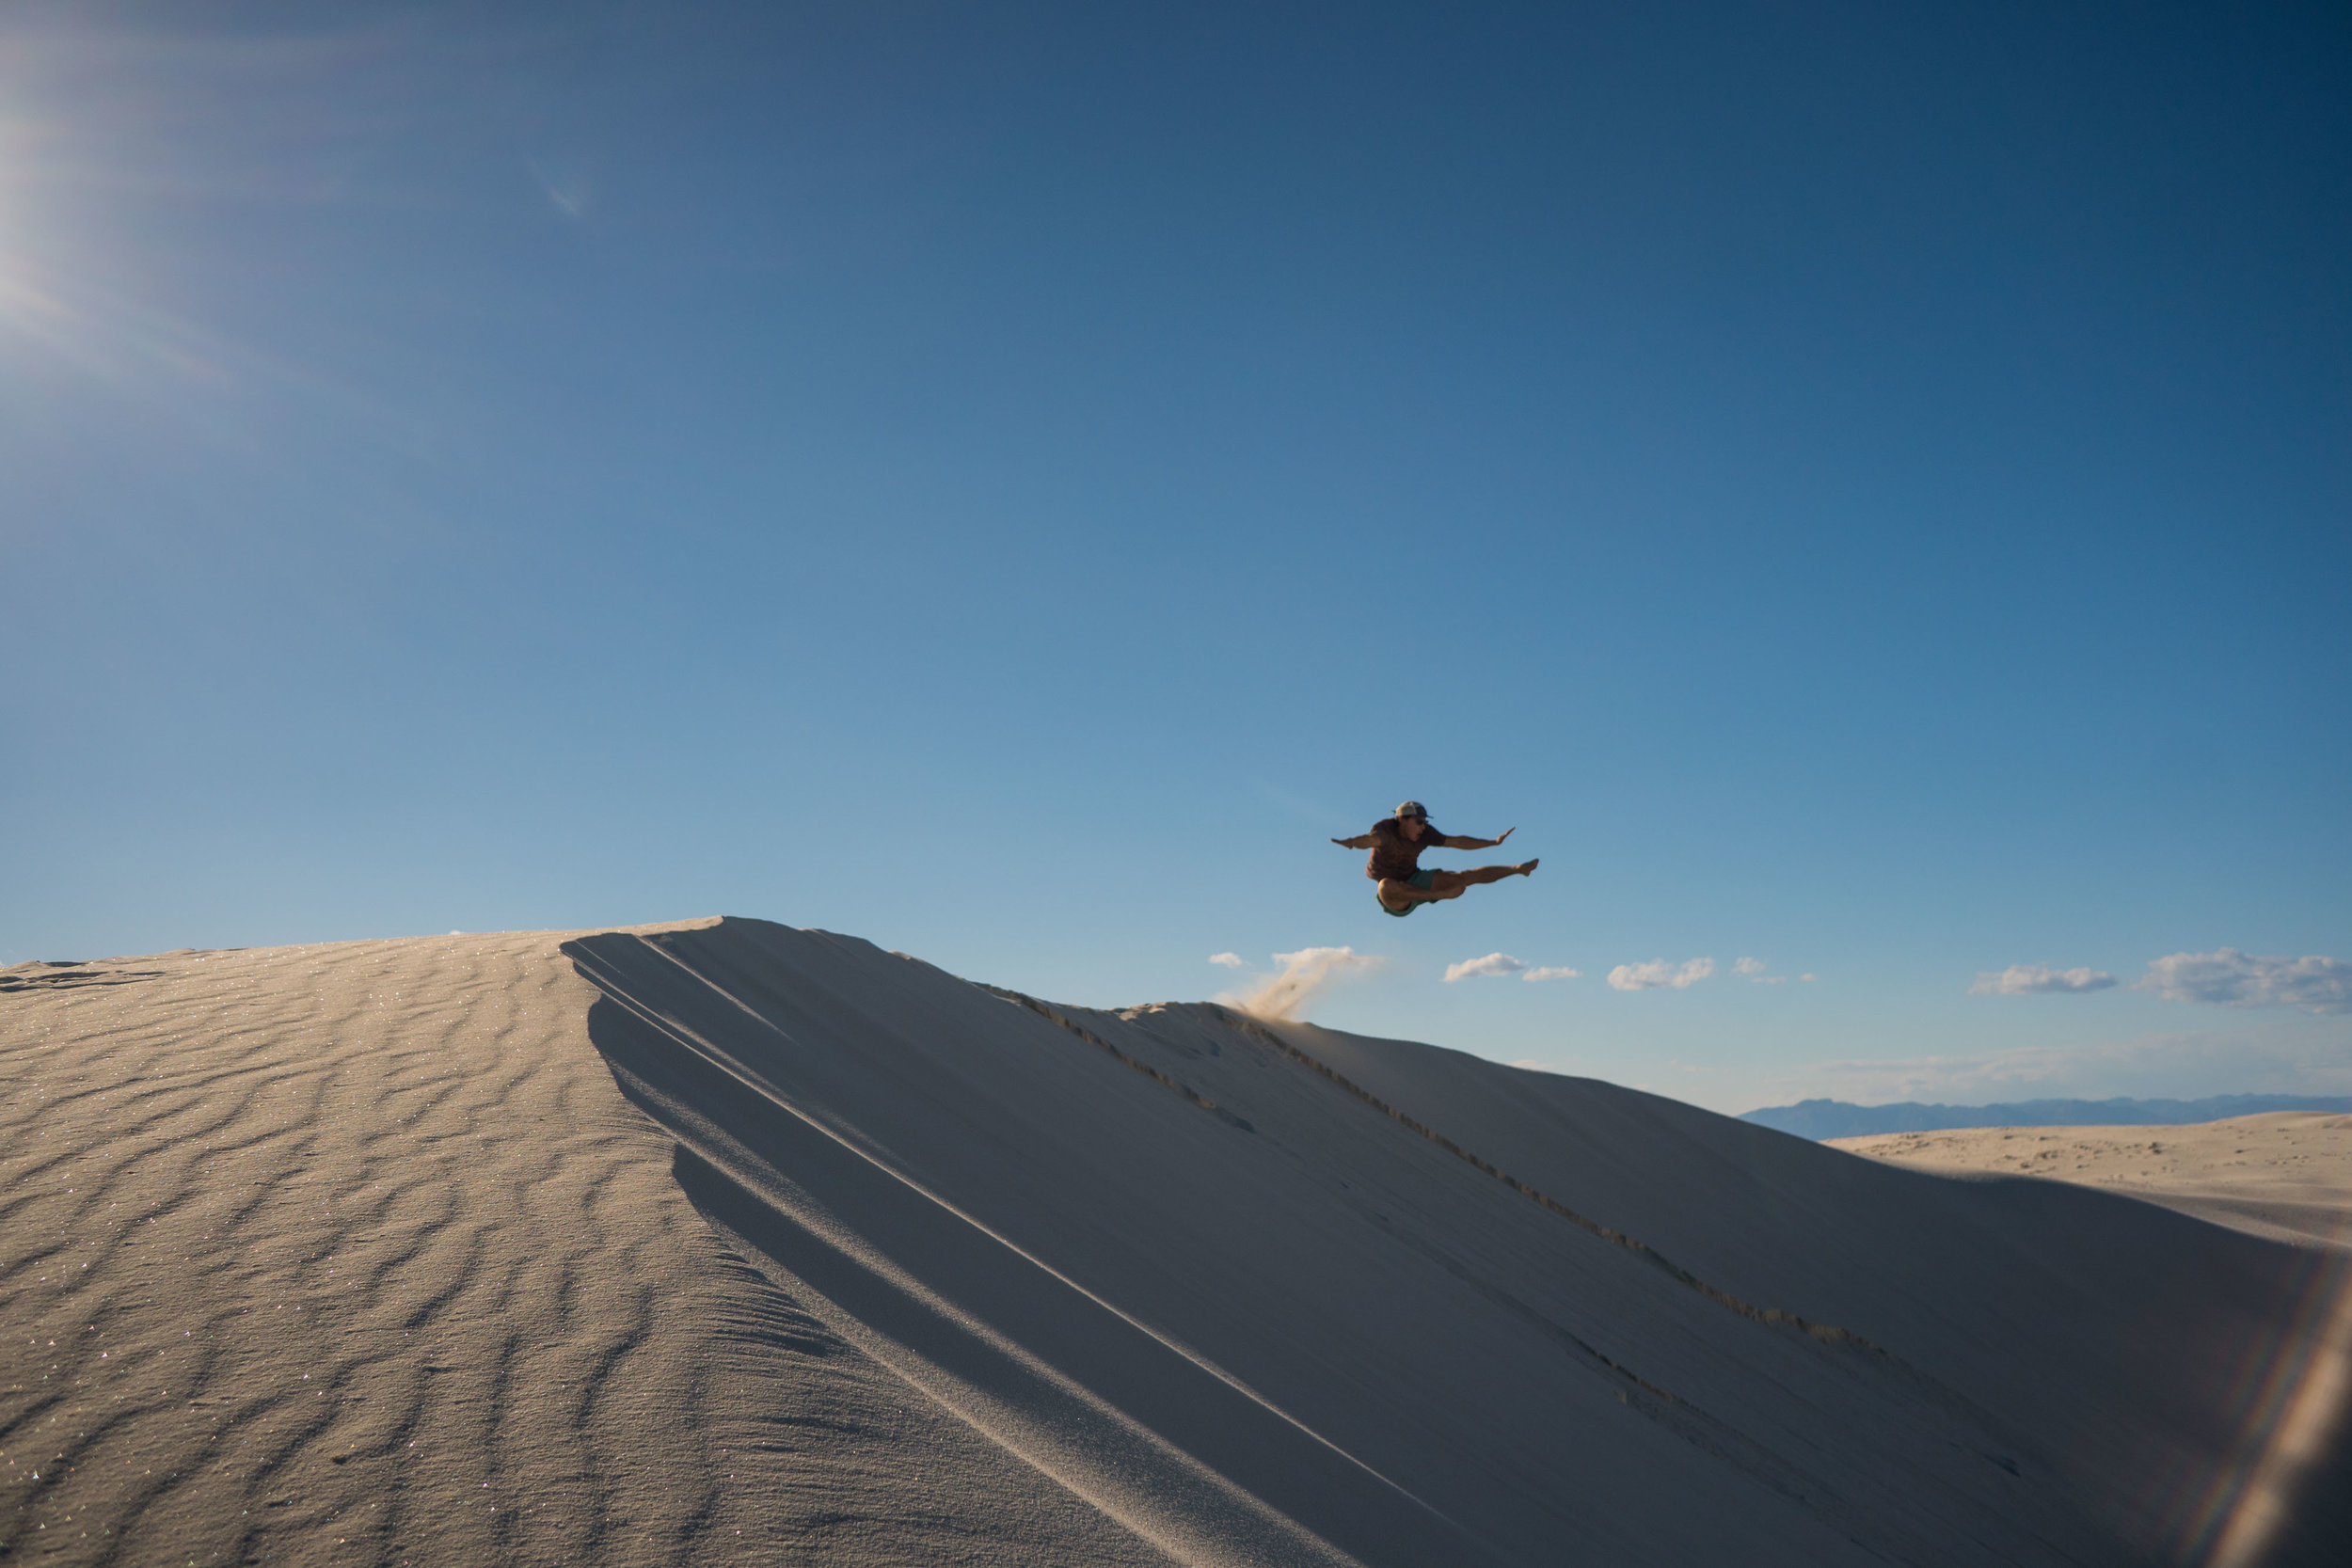 Owen and I had a jumping contest off the dunes. He won the jumping catagory